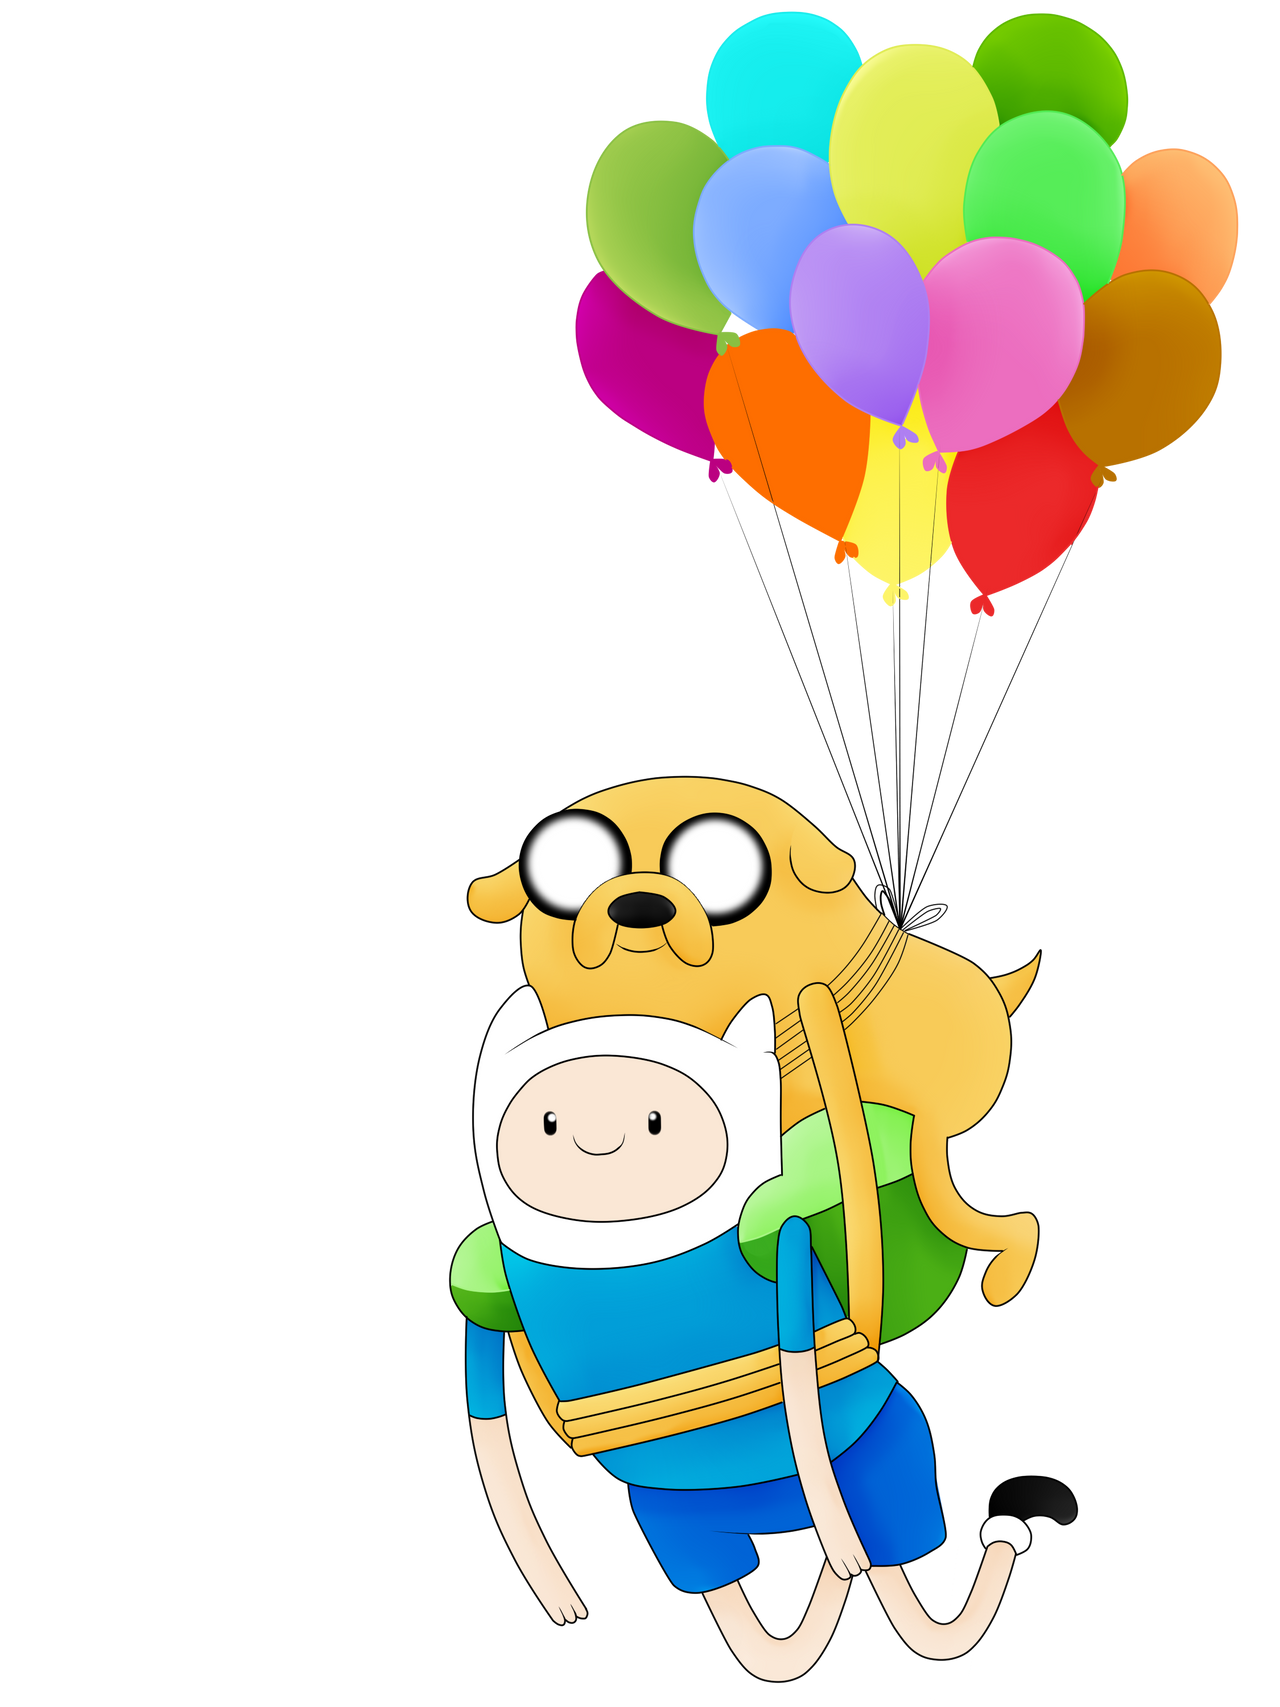 adventure time finn and jake ballons fly by andyeahFTW on deviantART